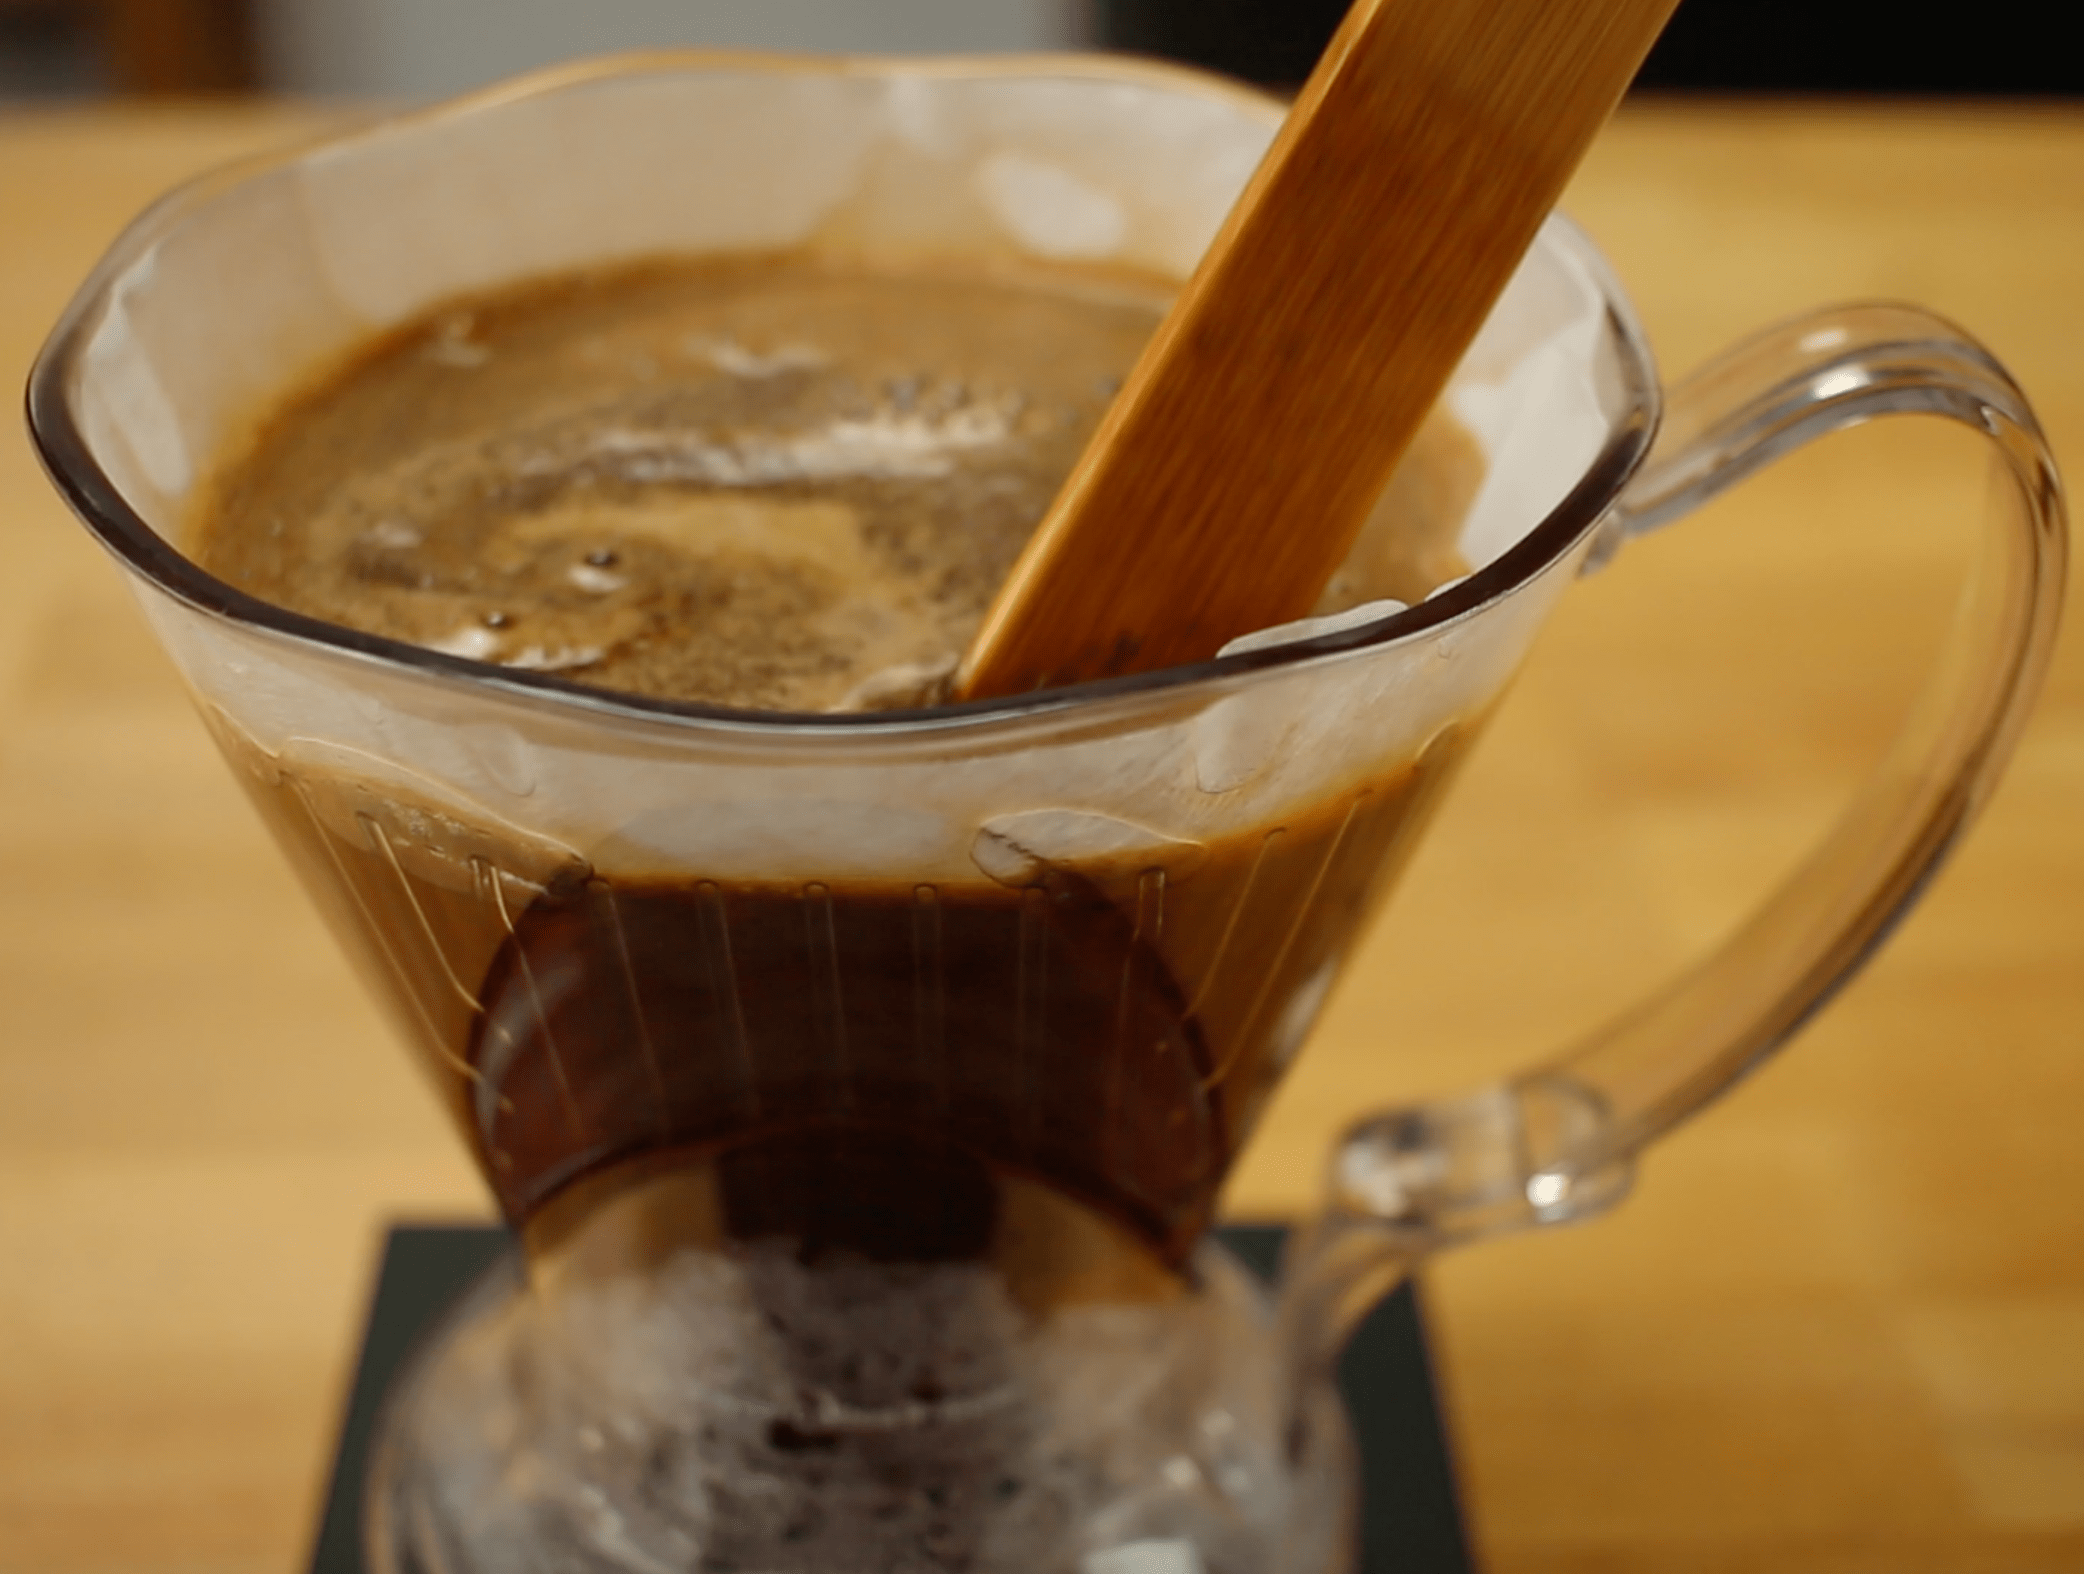 Brewing Guide: The Clever Coffee Dripper via @carvetiicoffee